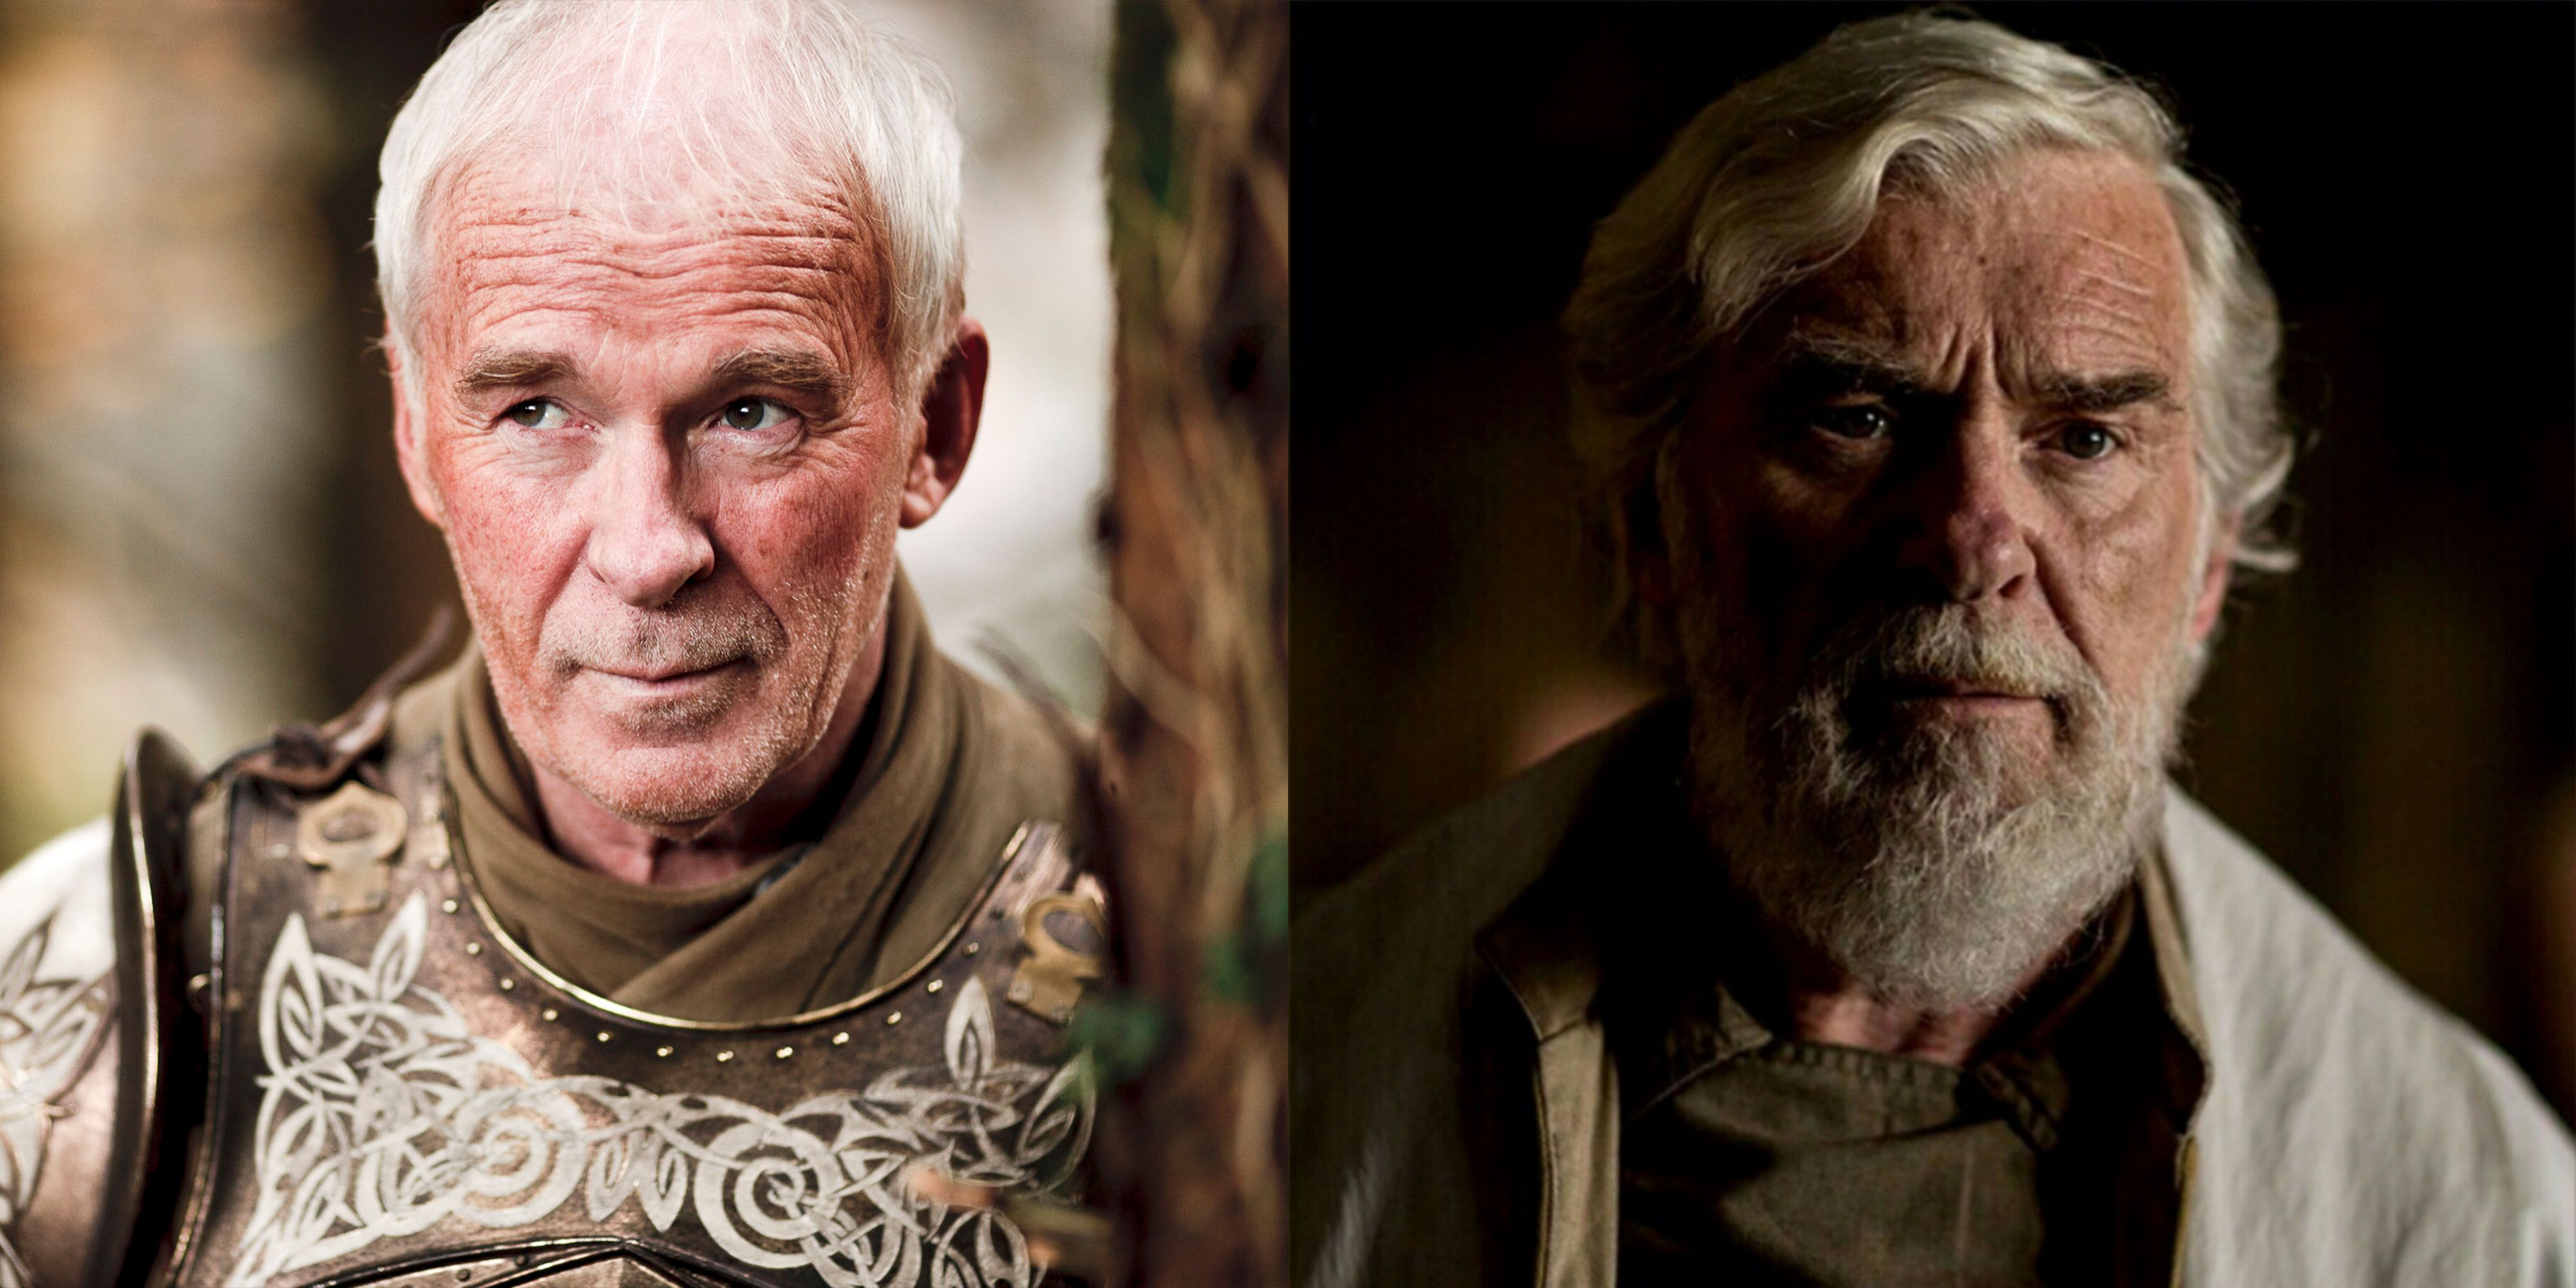 Ian McElhinney McElhinney went out swinging on GOT as Ser Barristan, and he followed up his Thrones stint with an appearance as General Dodonna in Rogue One: A Star Wars Story . Not too shabby.